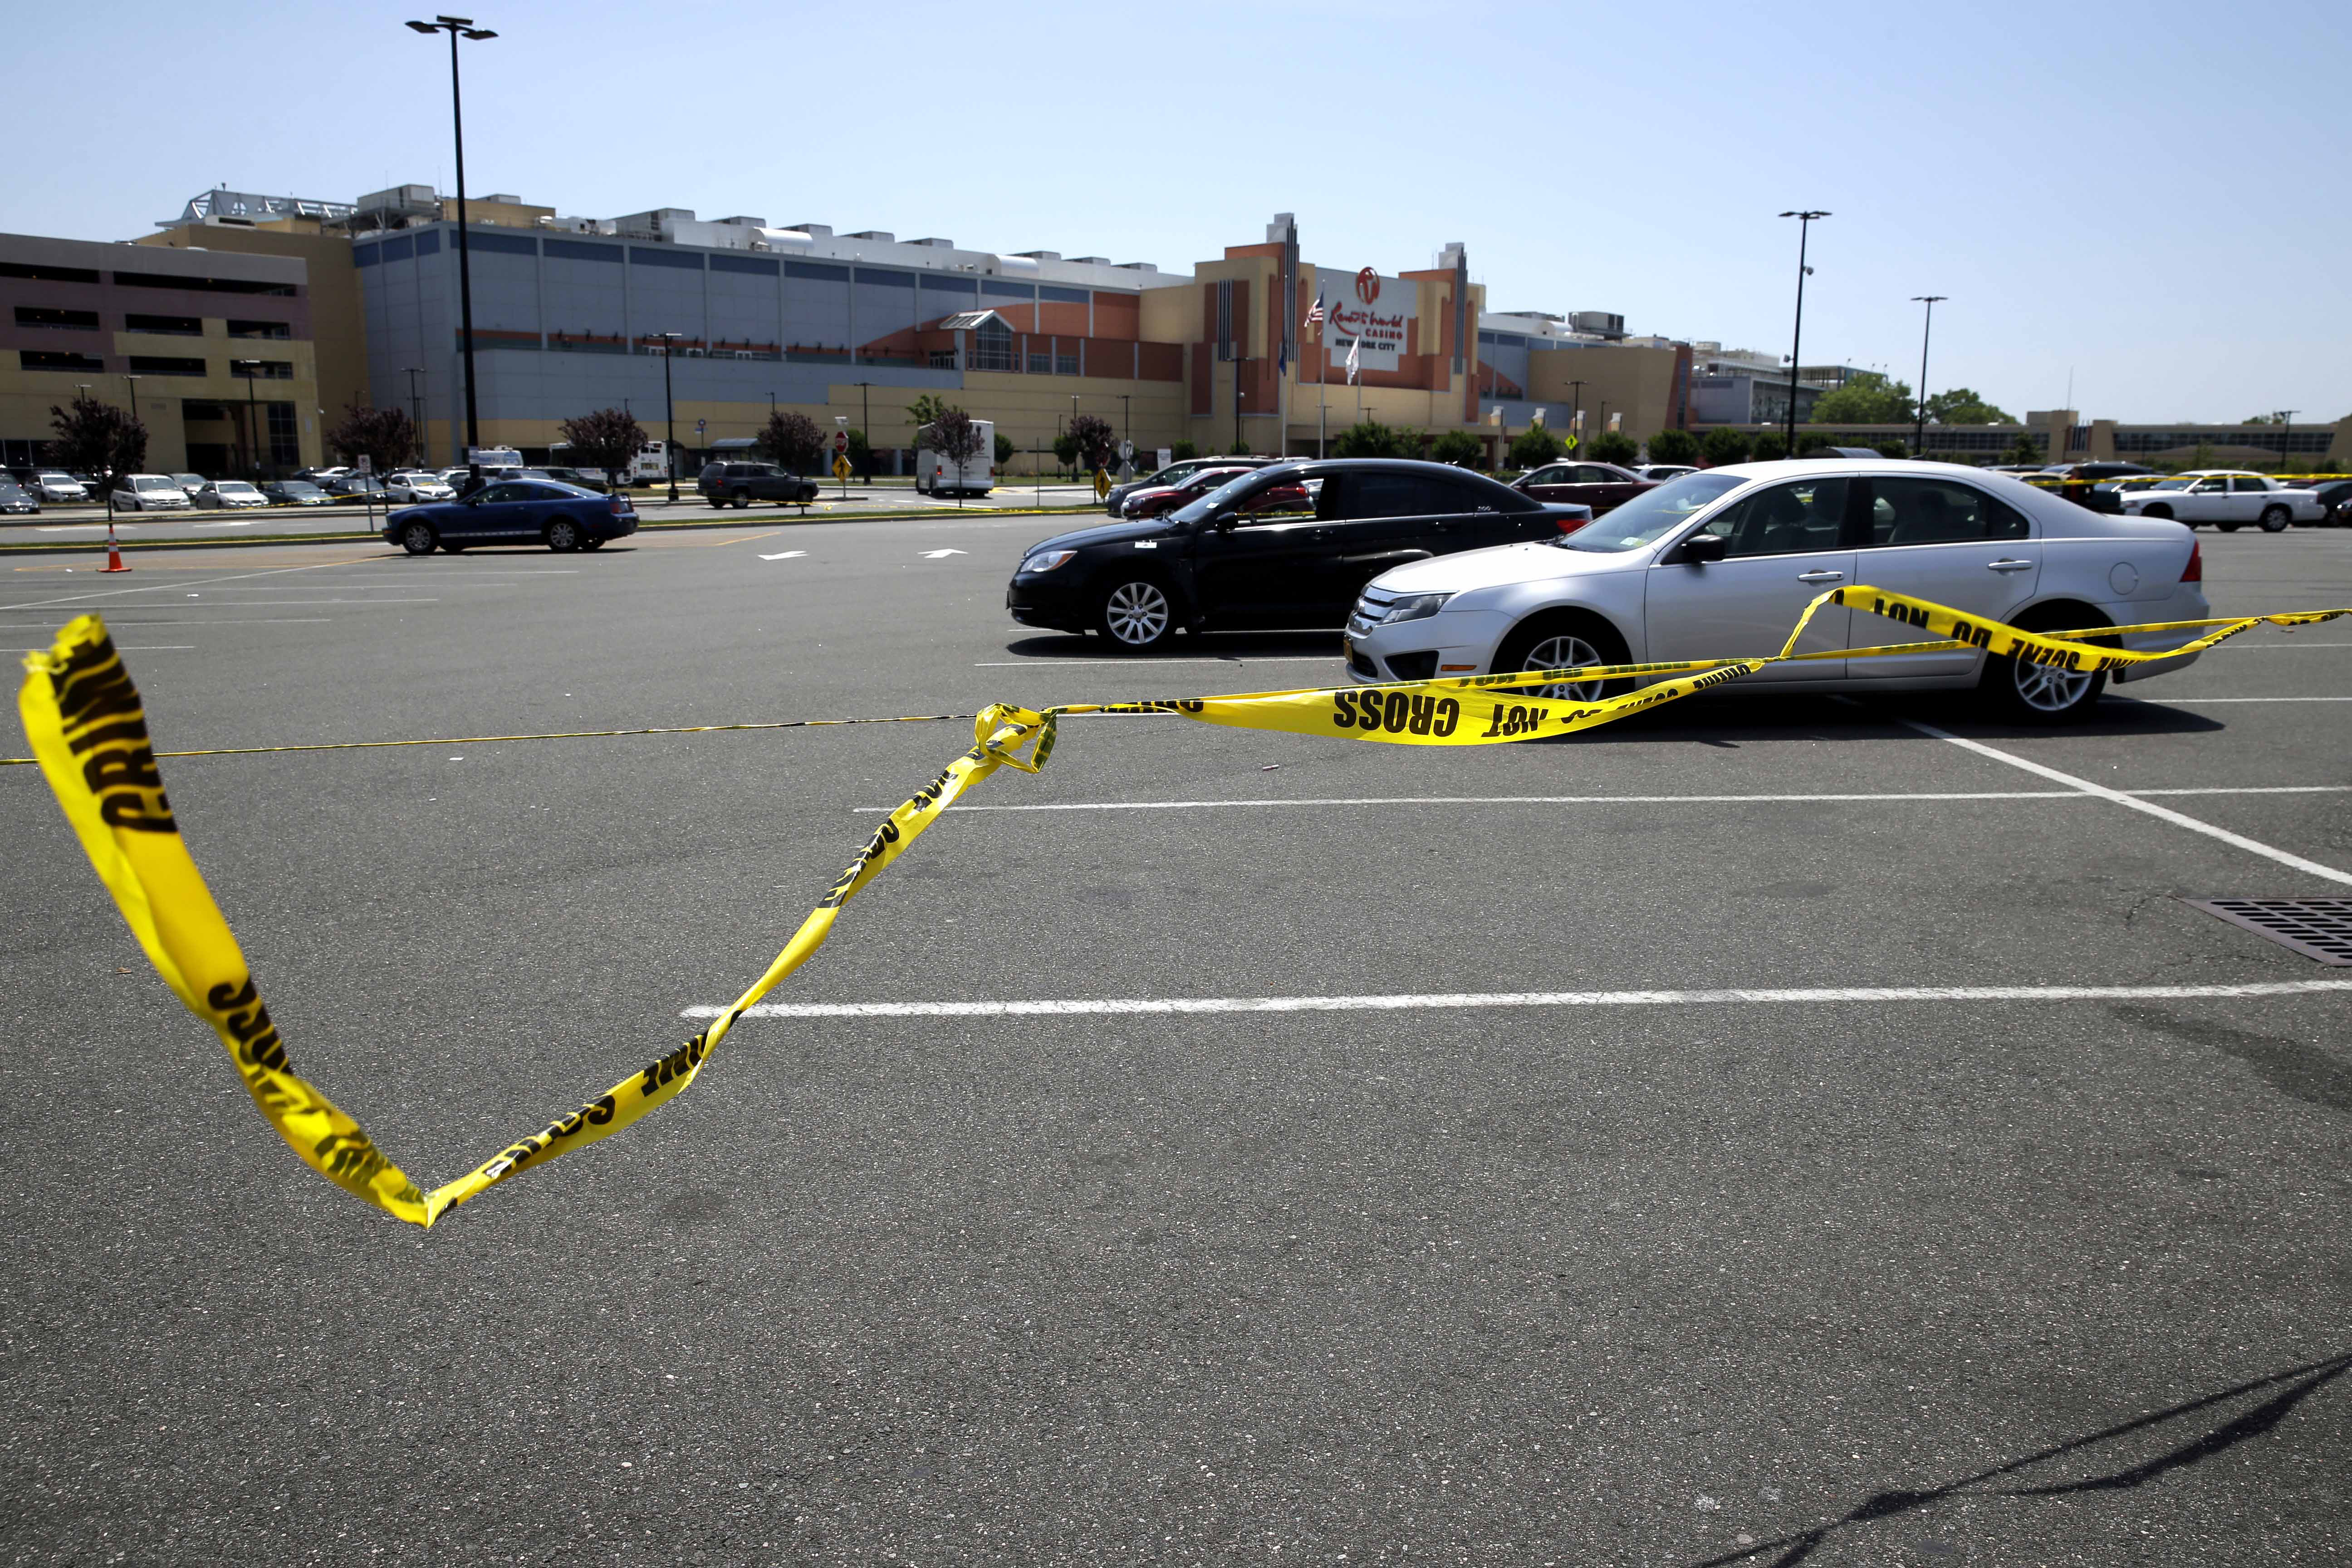 Crime scene tape blows in the wind near the scene of a fatal shooting in front of Resort World Casino in the borough of Queens in New York, on May 26, 2015.